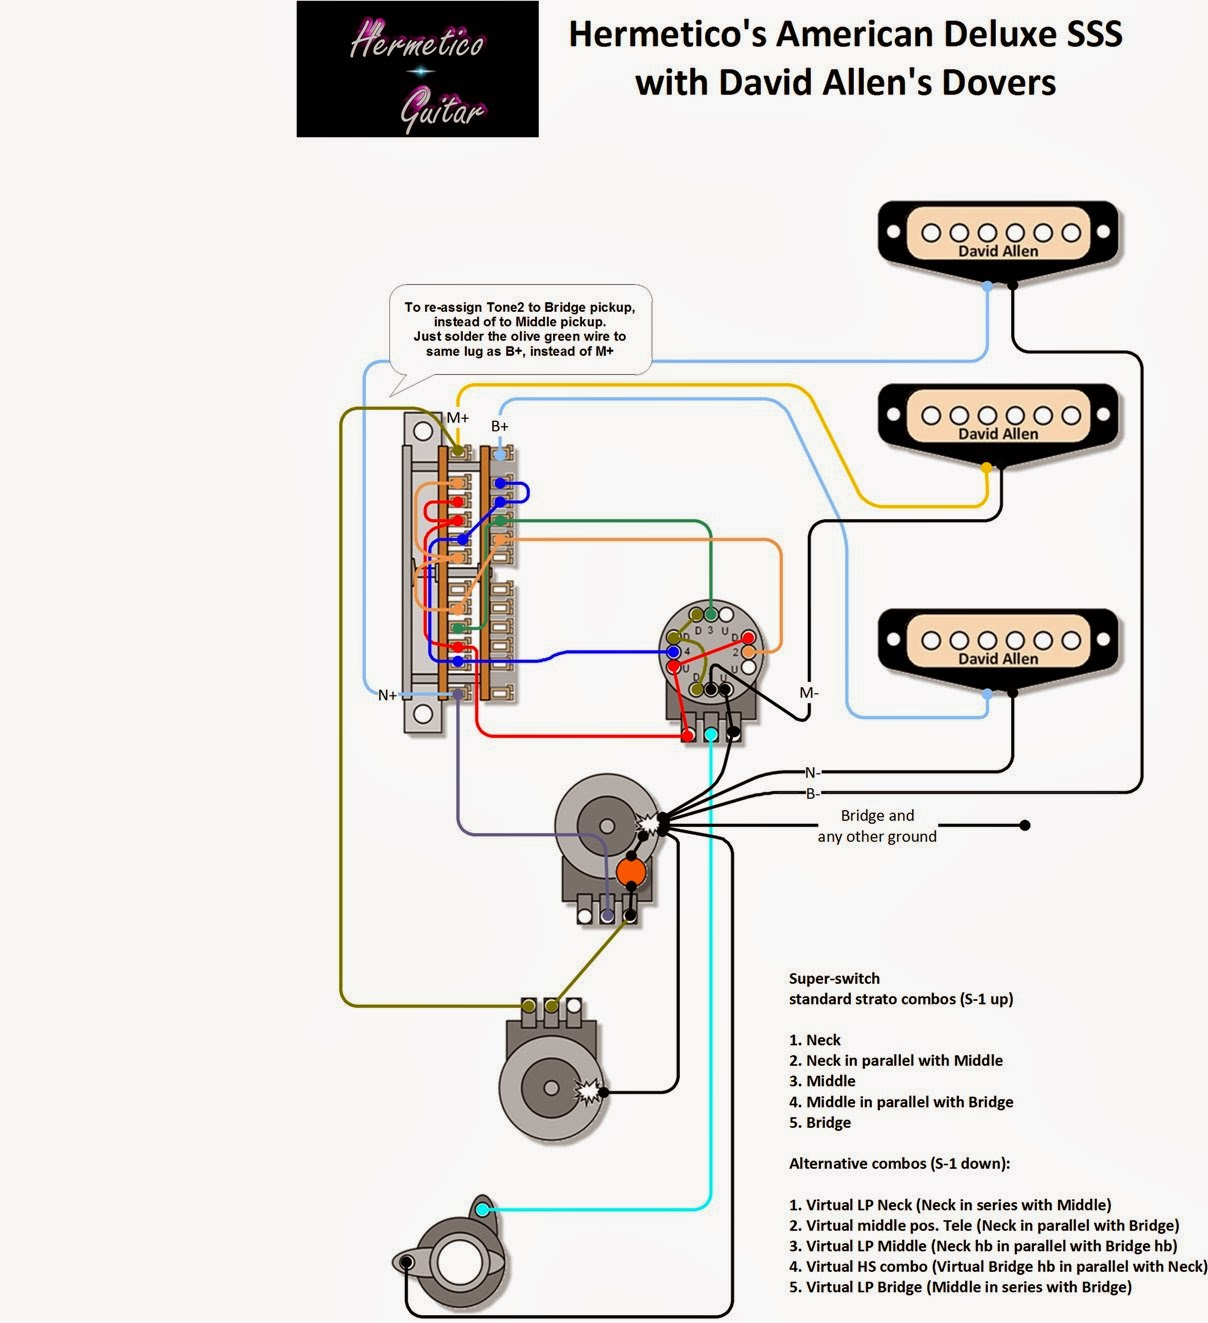 hermetico guitar fender american deluxe sss 2010 model fender stratocaster wiring modifications mexican strat wiring diagram [ 1208 x 1323 Pixel ]